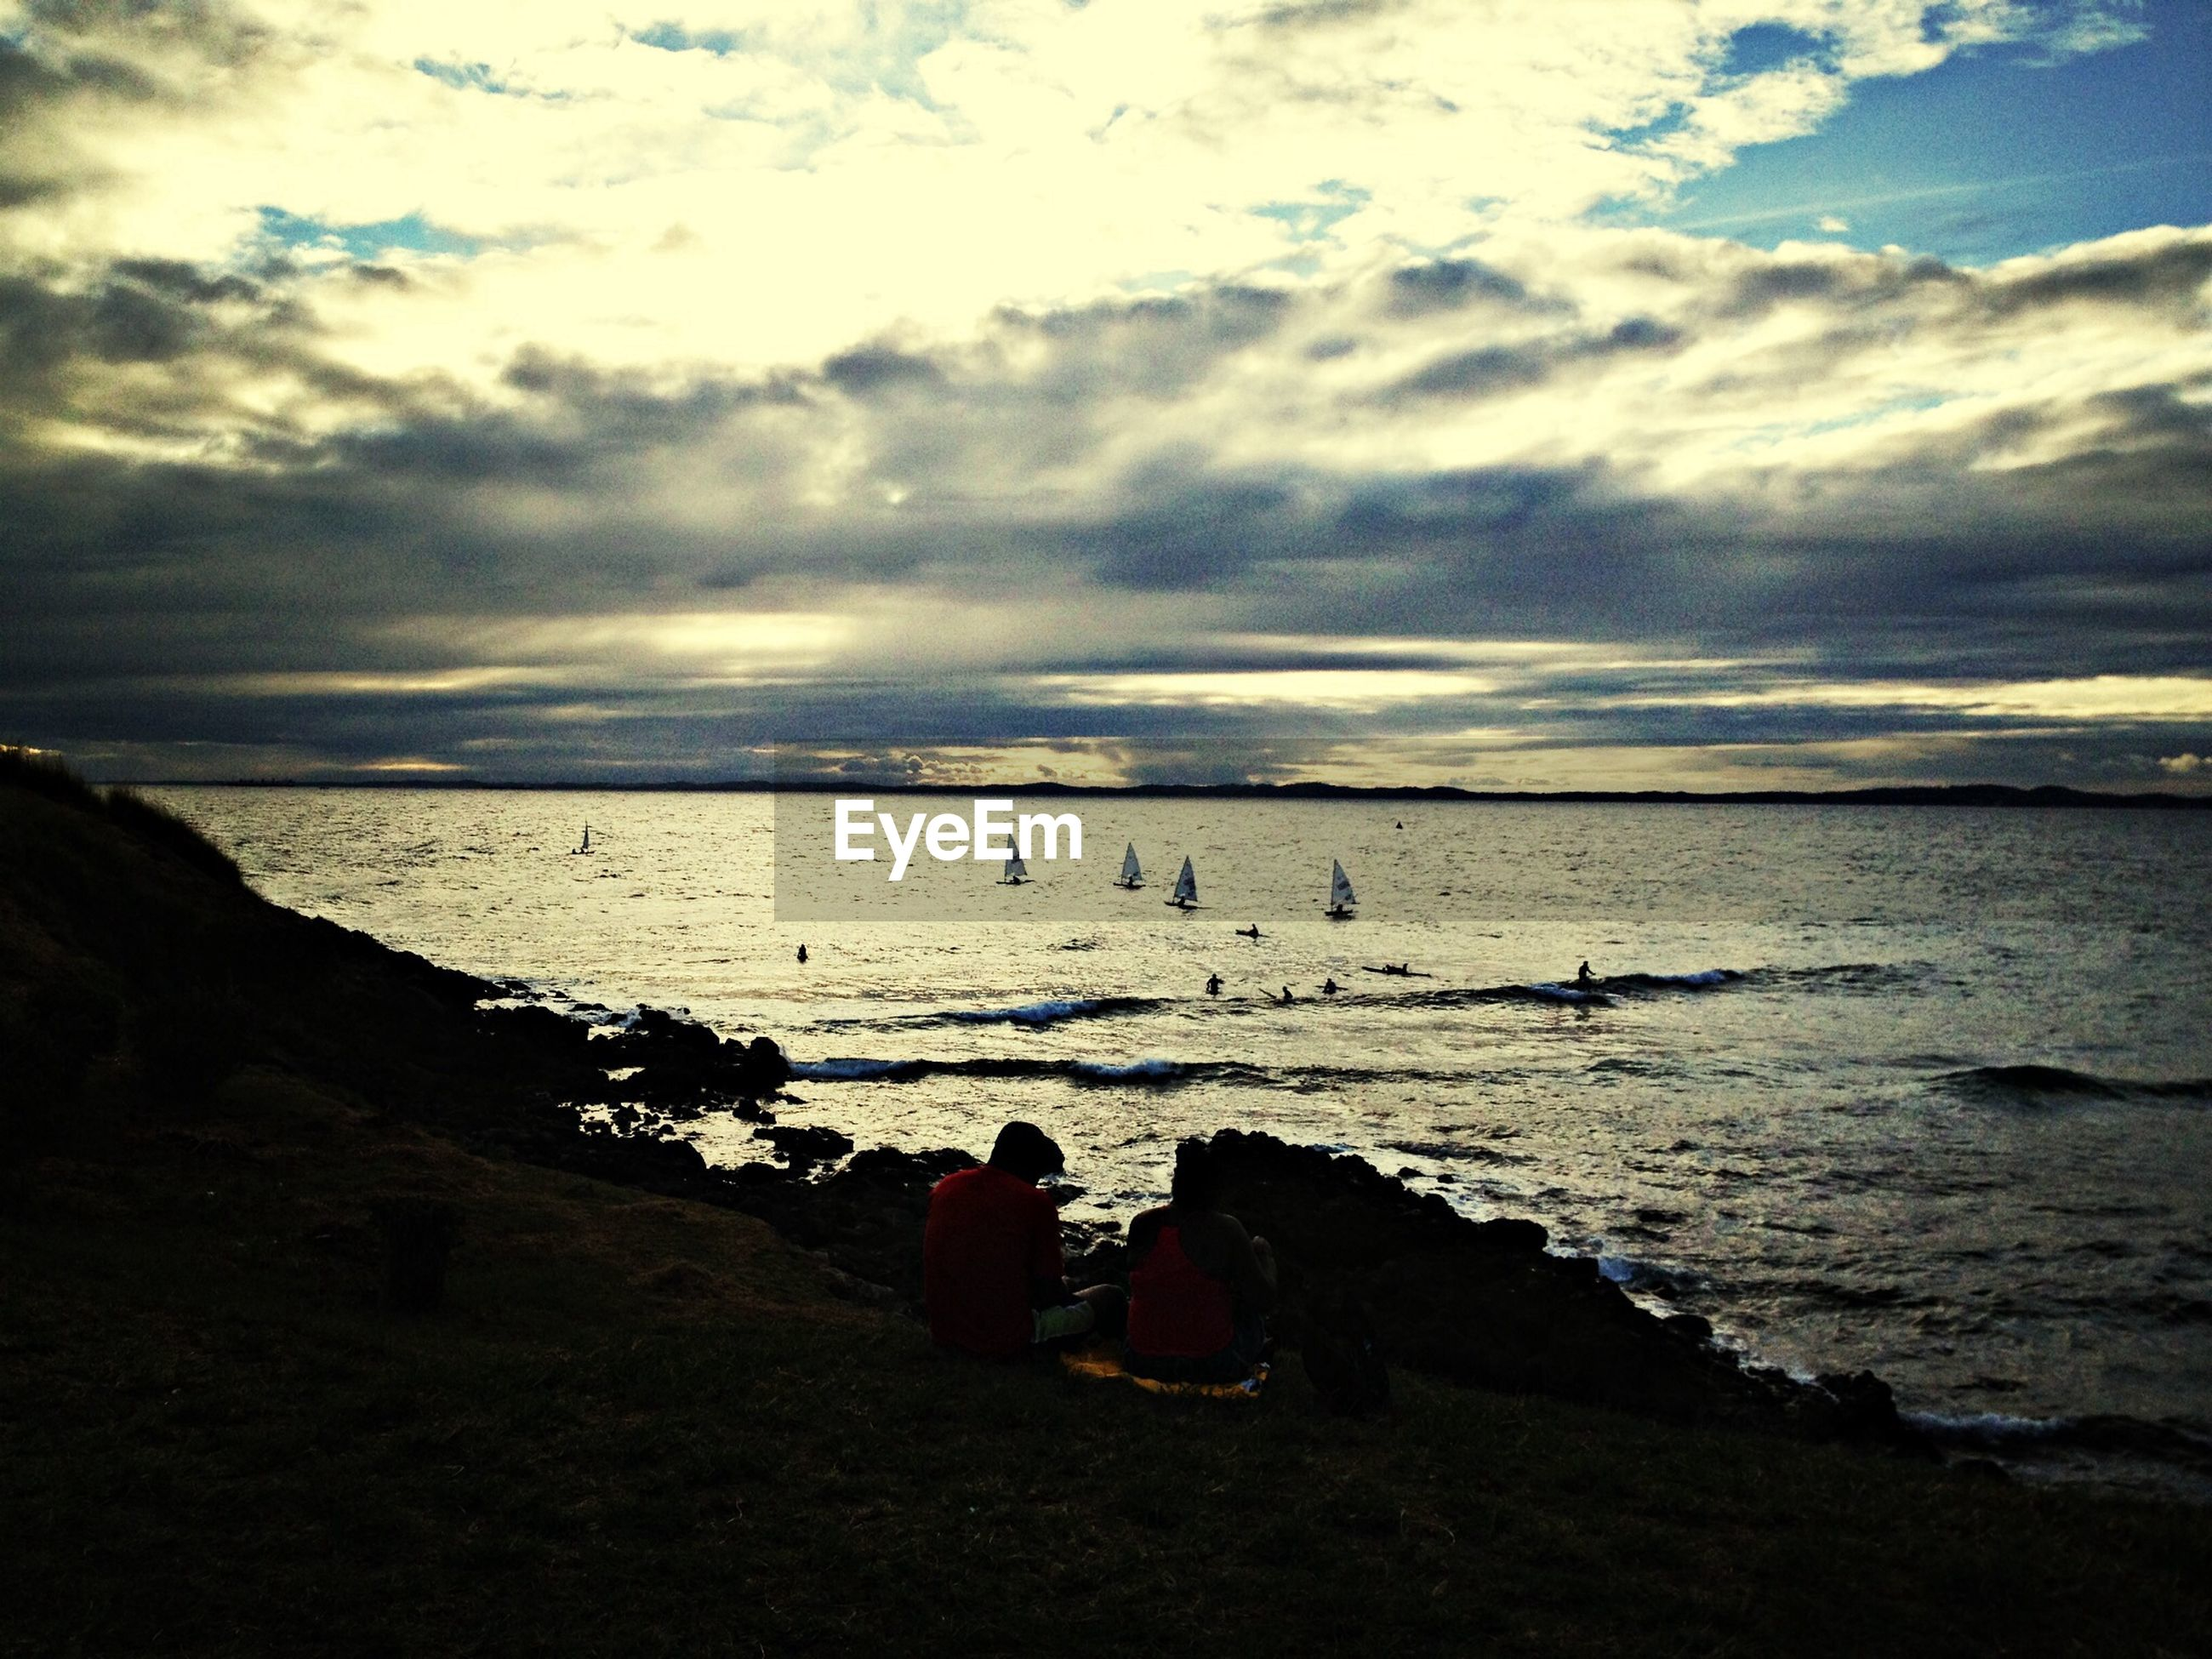 sea, sky, water, beach, horizon over water, cloud - sky, lifestyles, shore, leisure activity, tranquil scene, scenics, tranquility, beauty in nature, cloudy, nature, cloud, sand, person